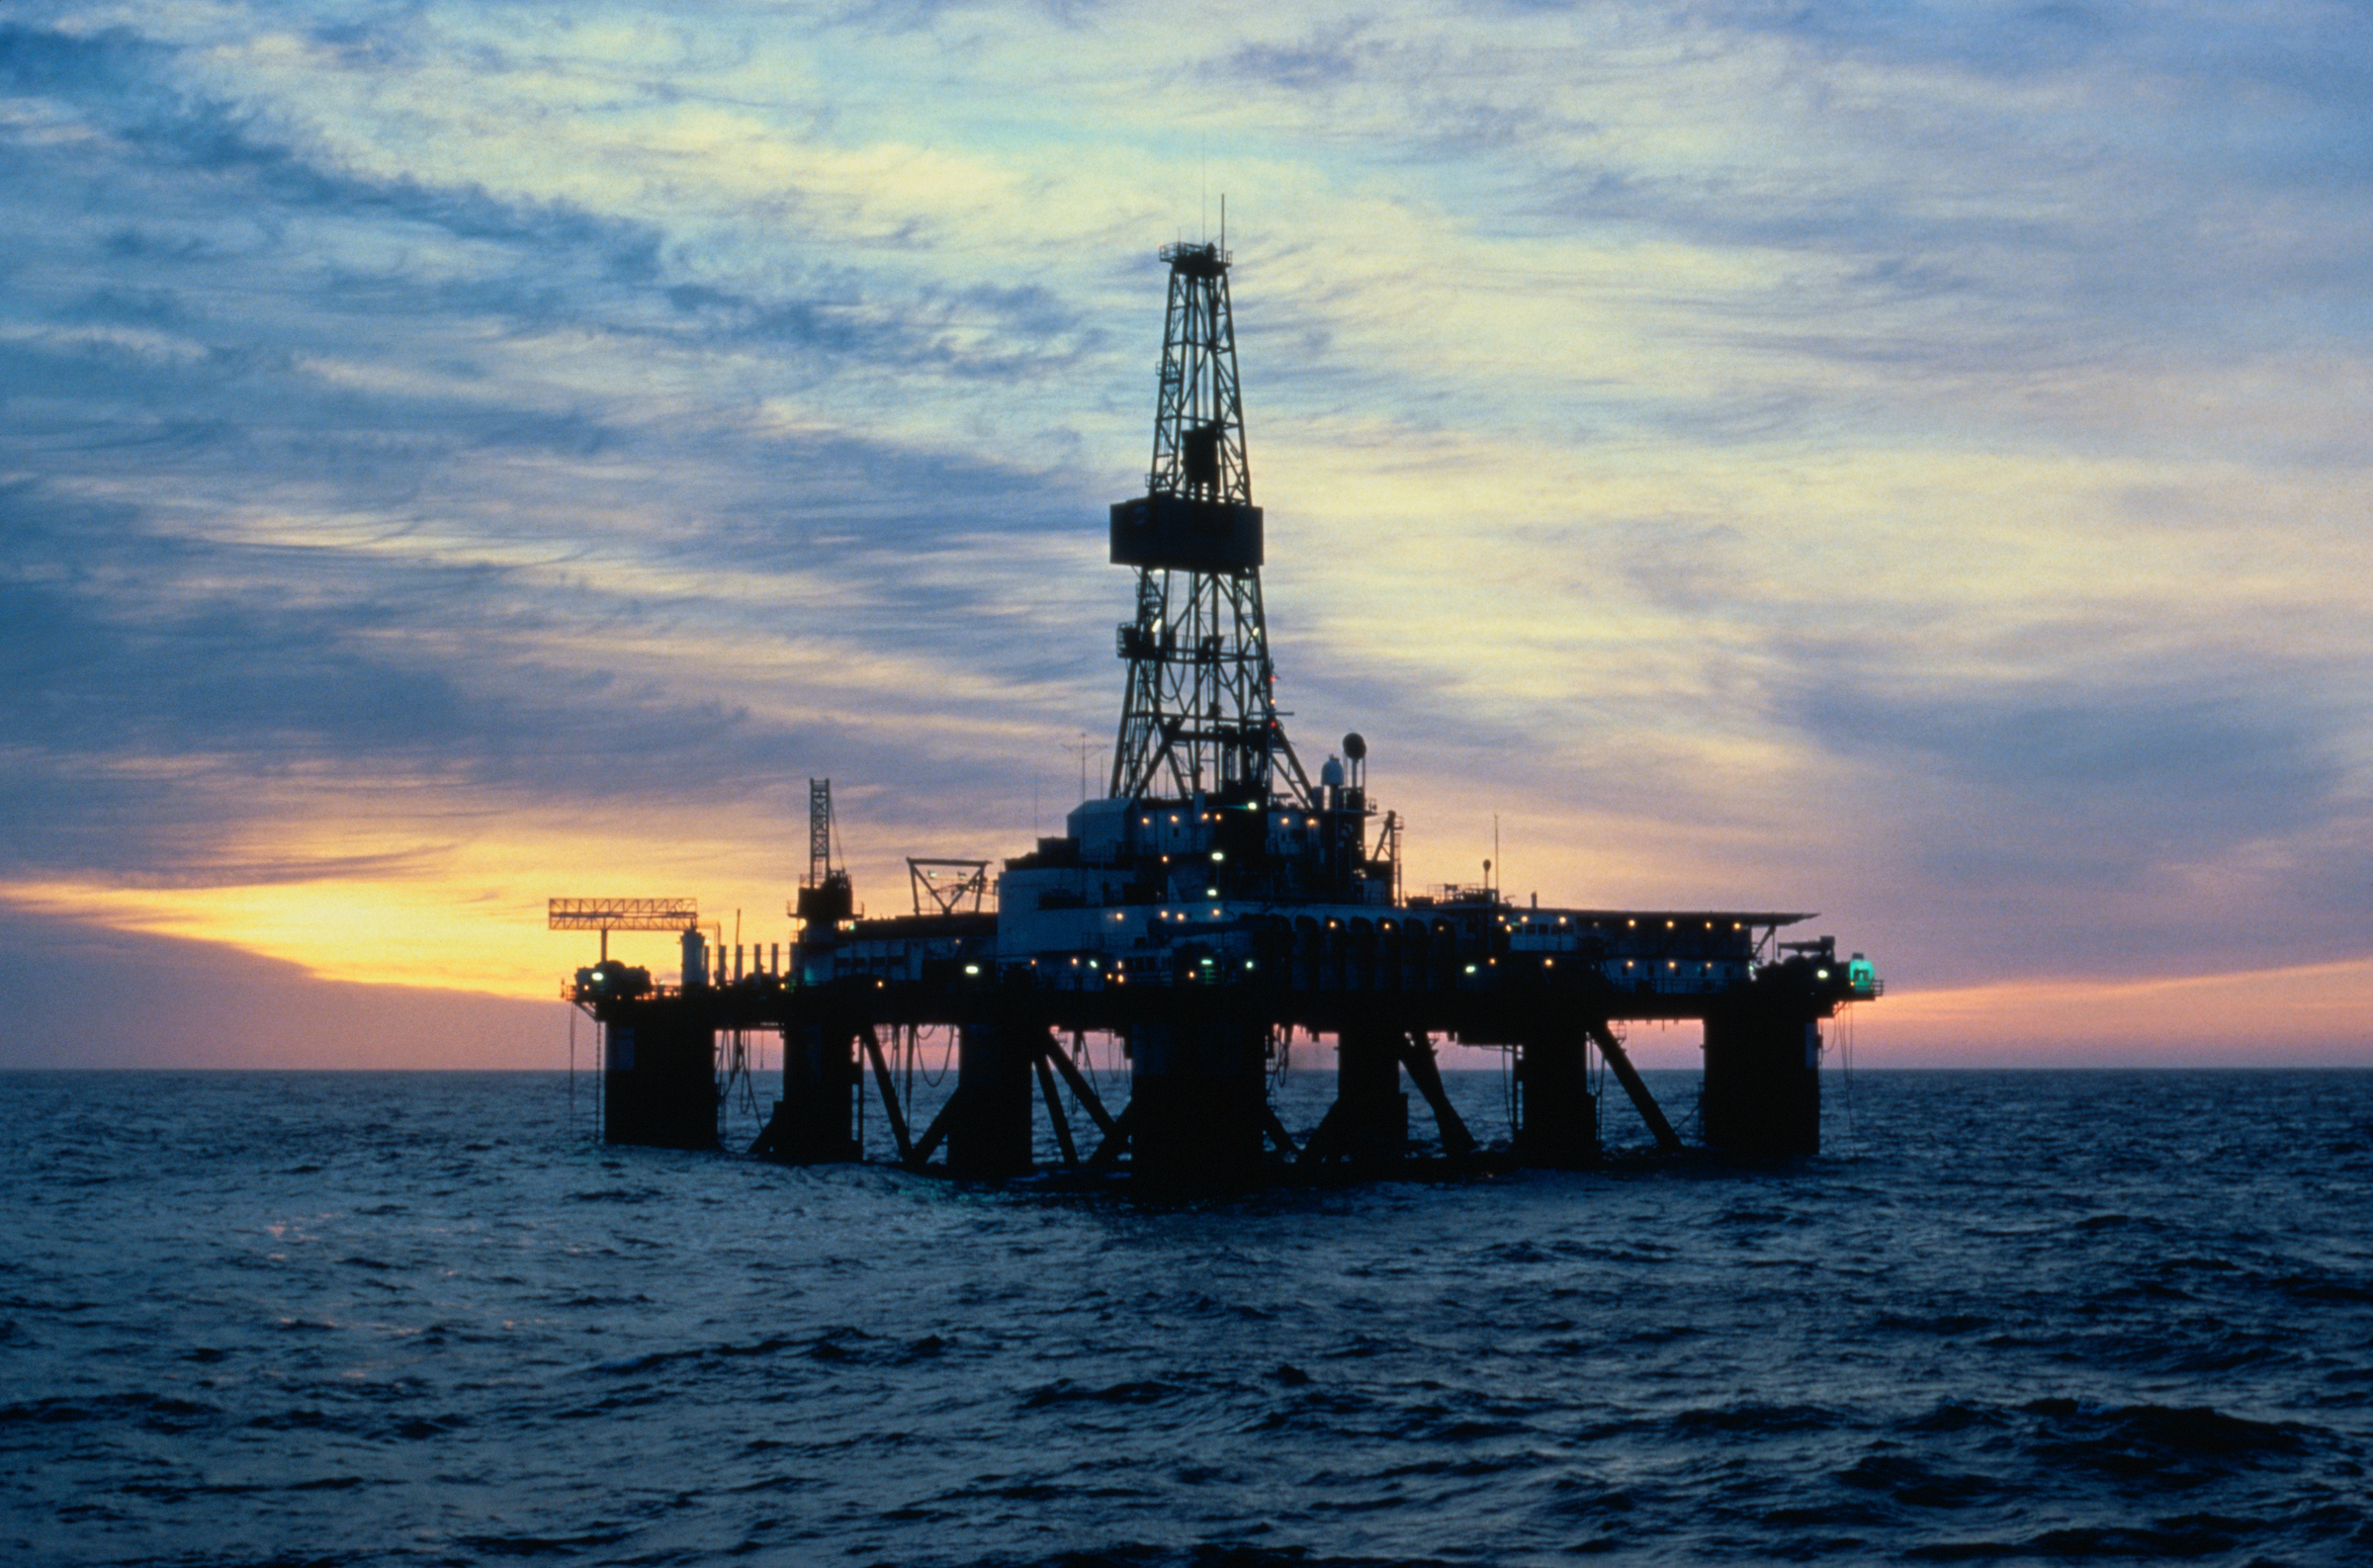 The Sedco 709 offshore oil drilling rig in Davis Straight, between southwest Greenland and Baffin Island.